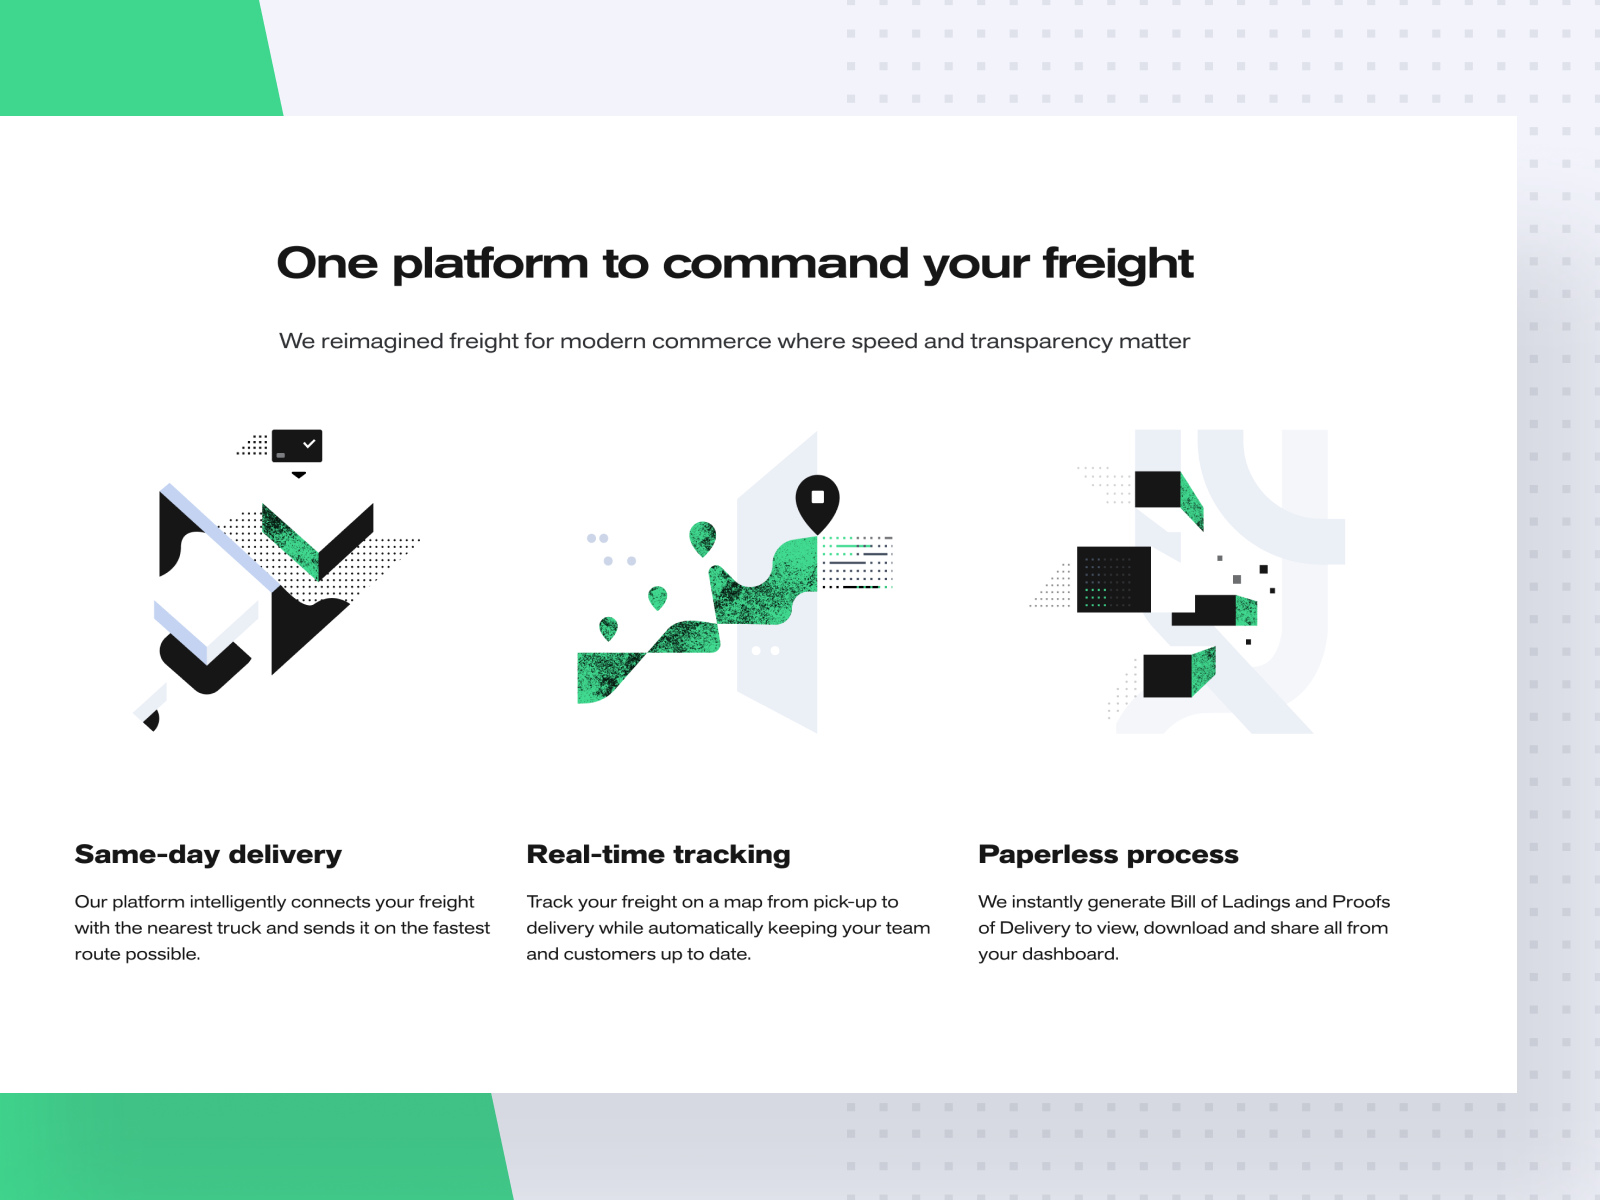 Command Your Freight